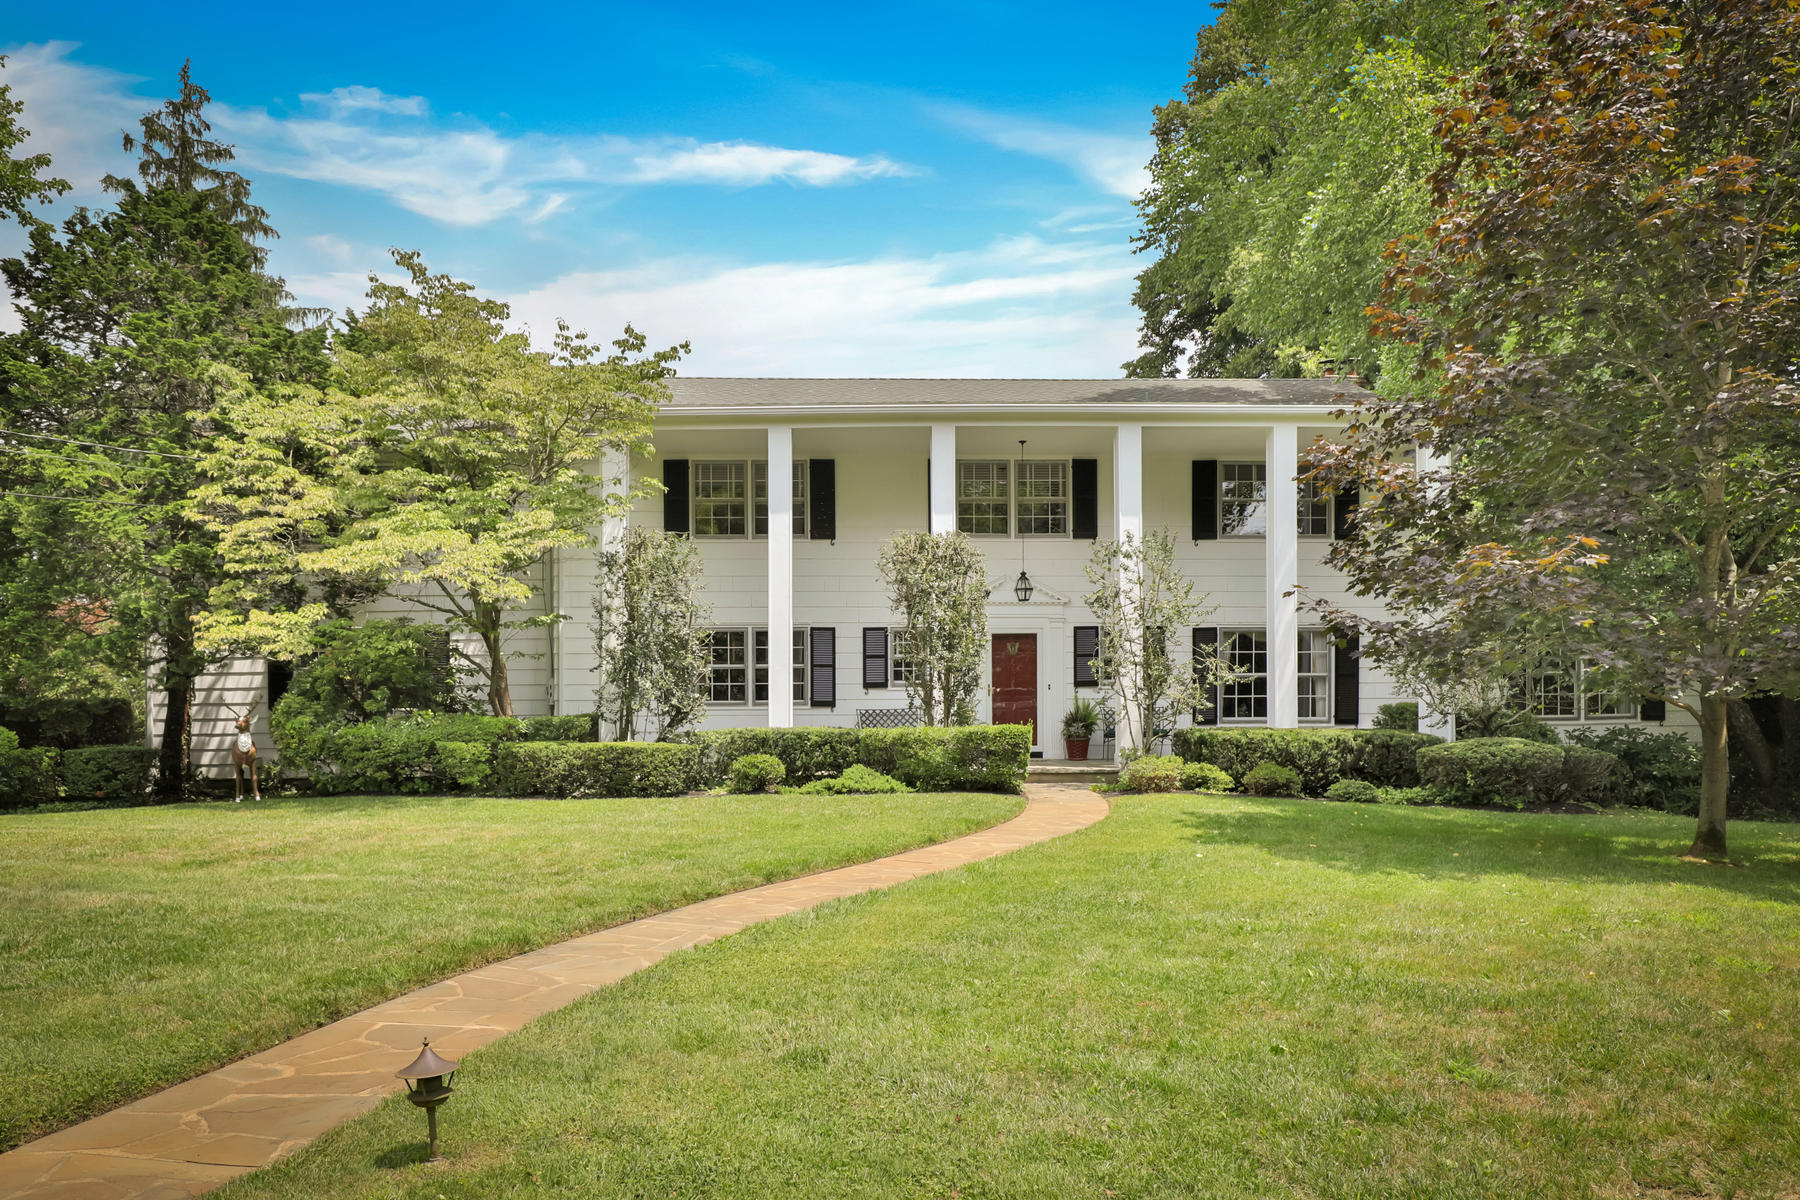 Single Family Homes for Sale at Gracious Southern Colonial 17 Kemp Avenue Rumson, New Jersey 07760 United States